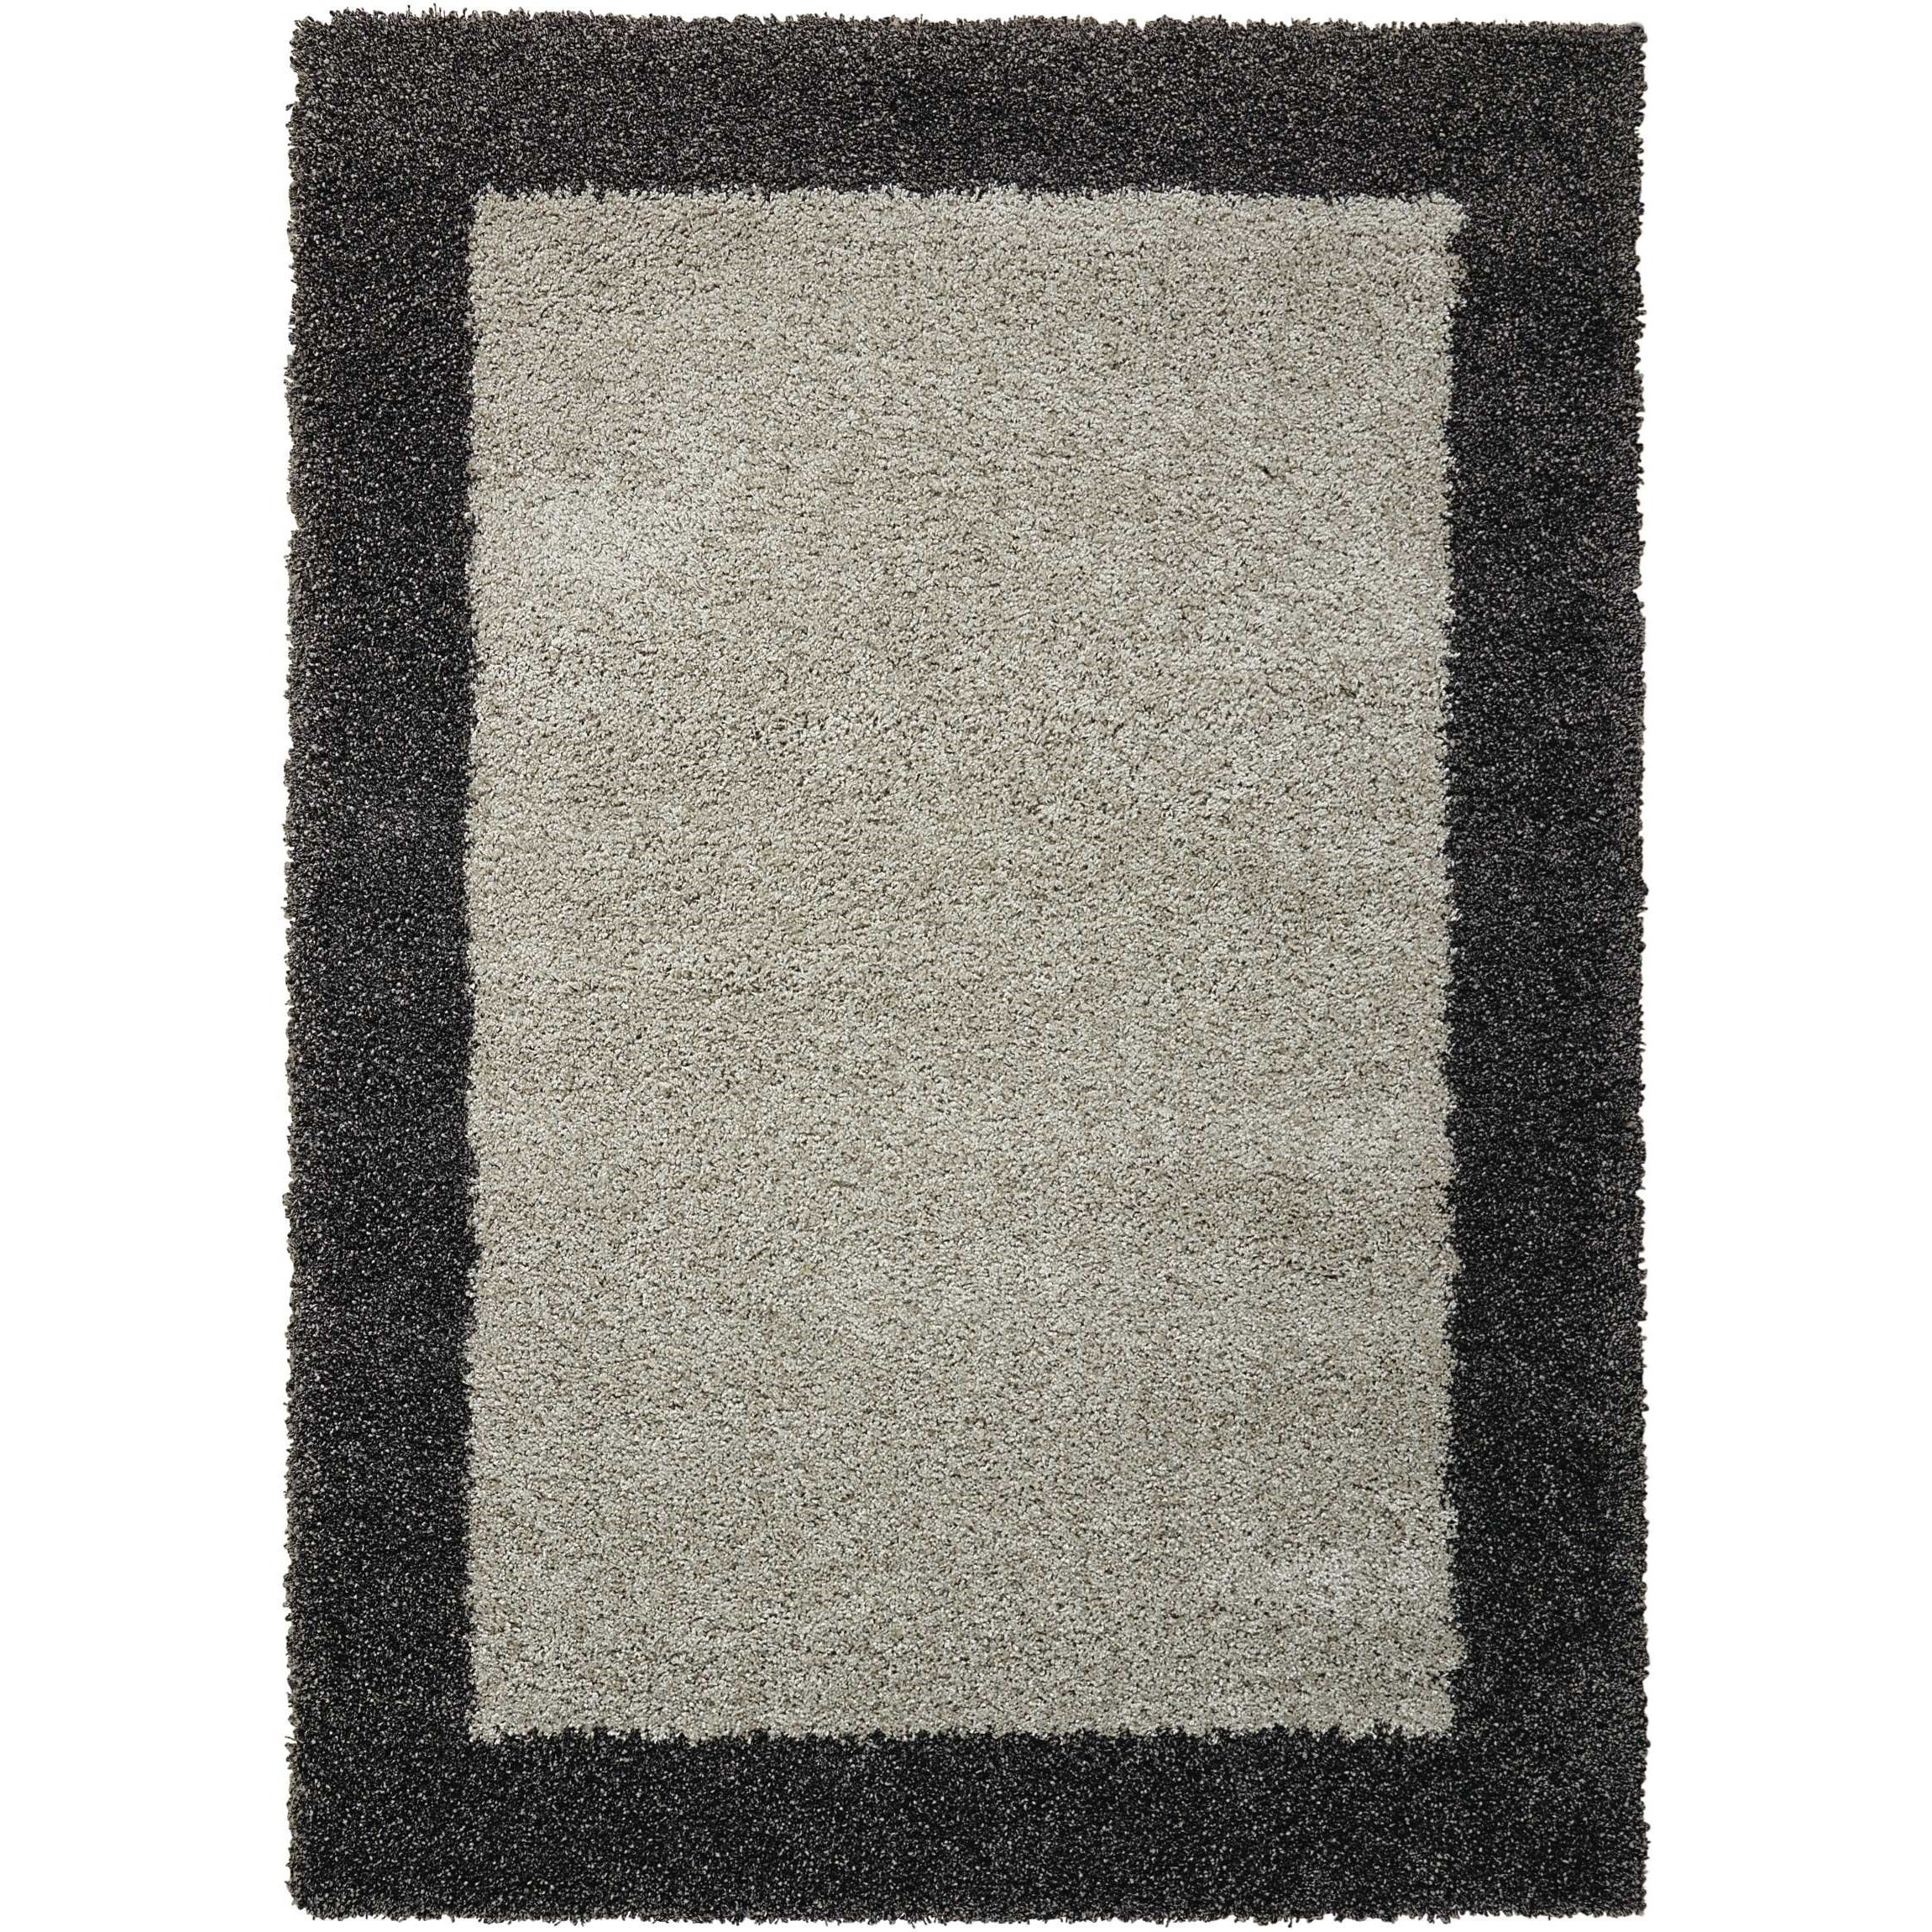 Amore Amore AMOR5 Grey 8'x11'   Rug by Nourison at Home Collections Furniture